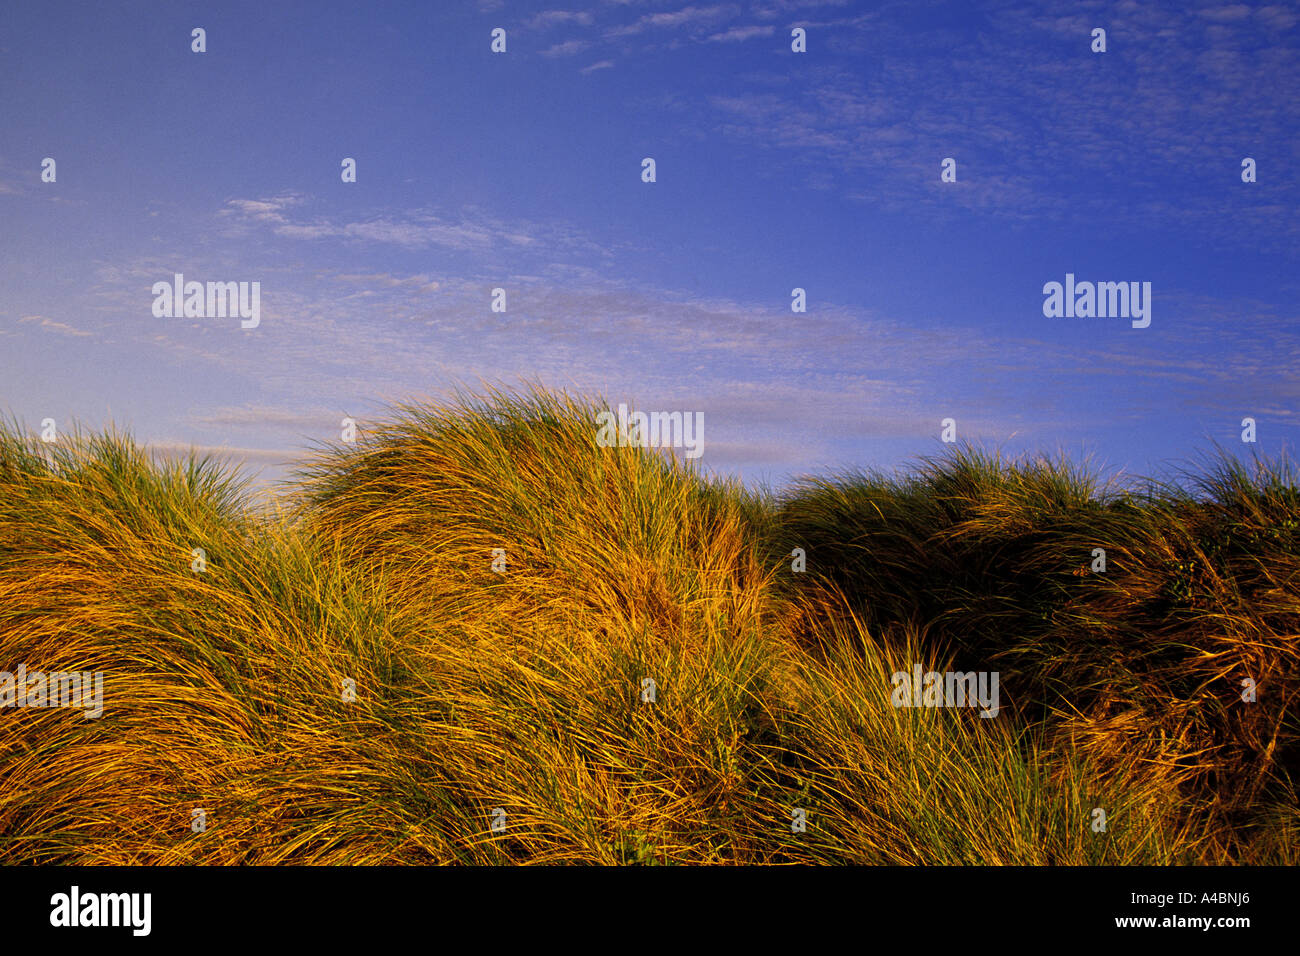 Dune grasses shaped by blowing winds along the Pacific coast at the Oregon Dunes National Recreation Area in Oregon - Stock Image